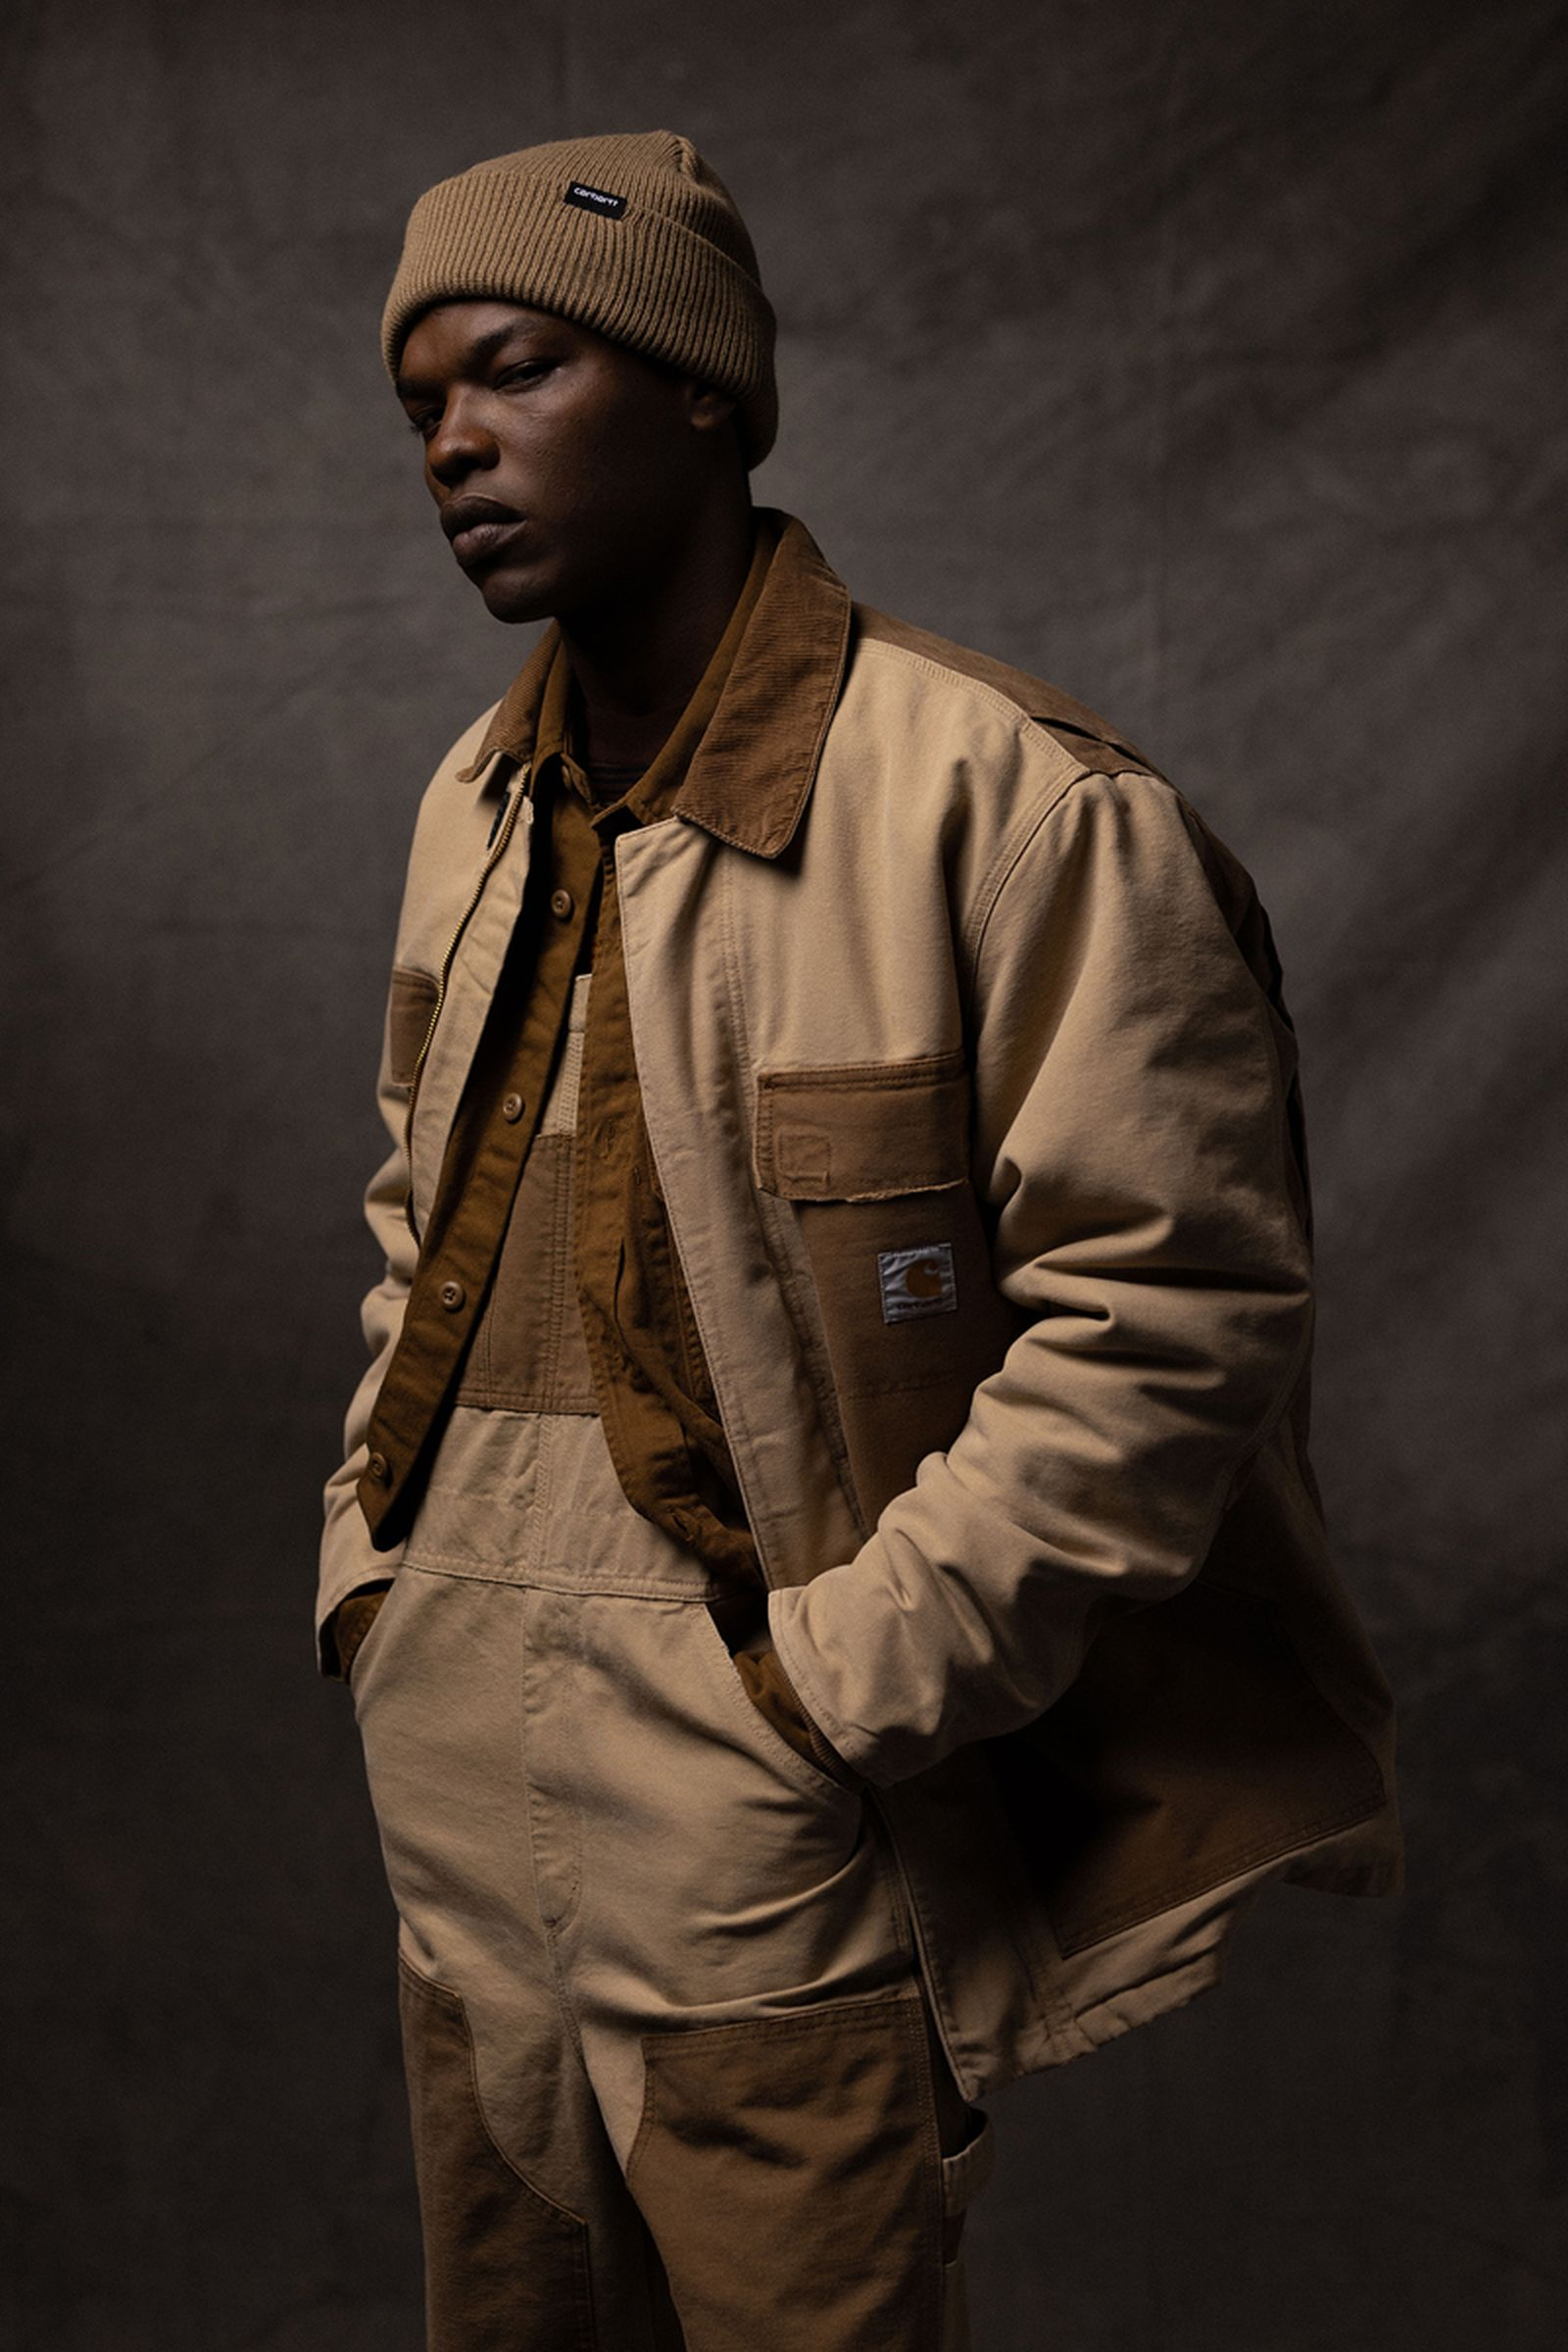 carhartt-wip-fall-winter-2021-collection- (1)